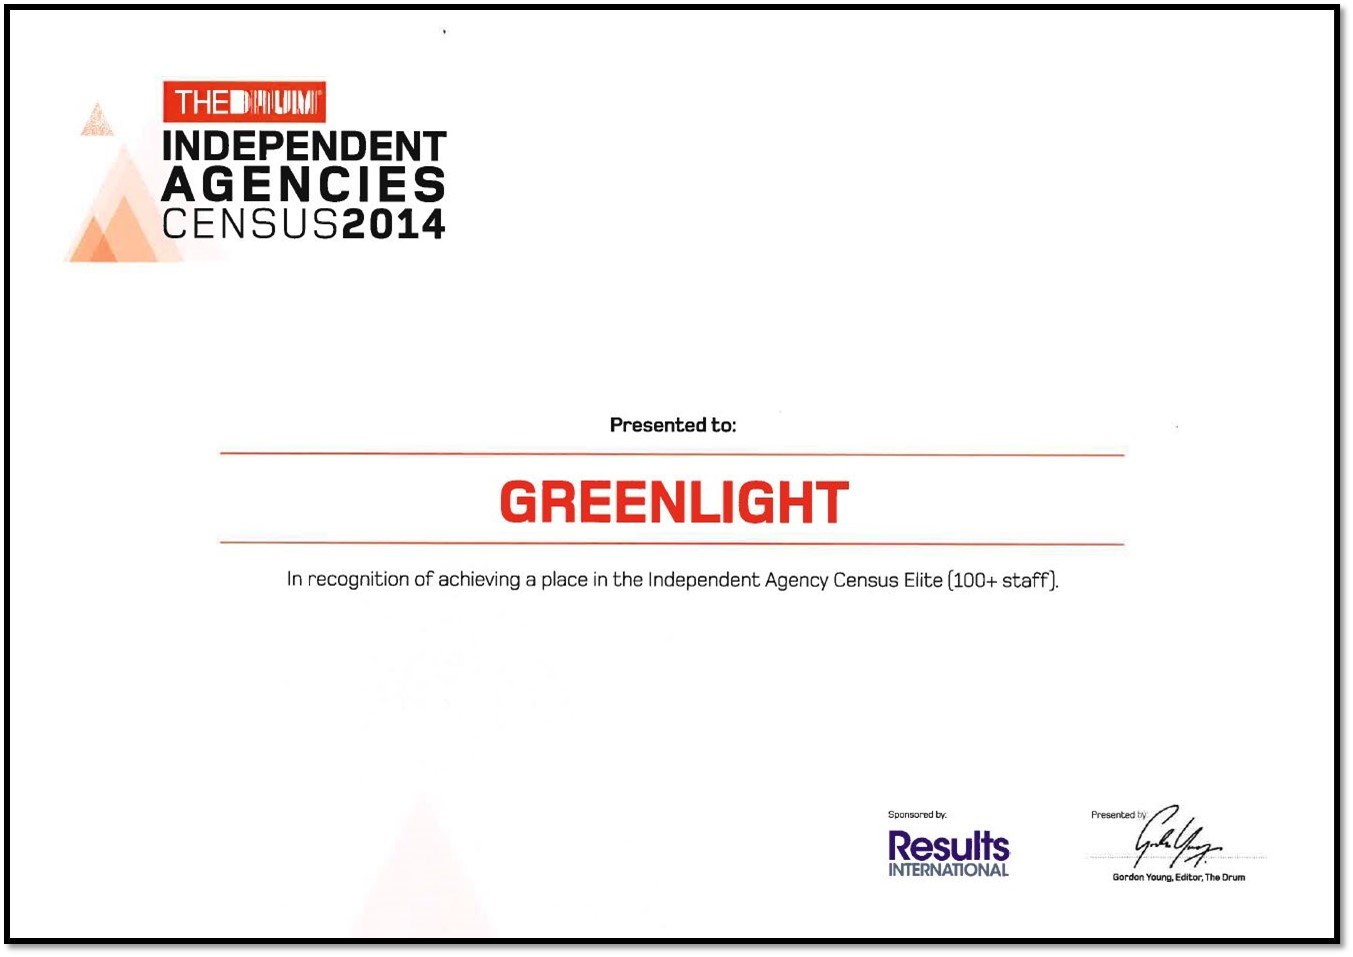 Top 5 ranking for Greenlight in The Drum's Independent Agencies Census